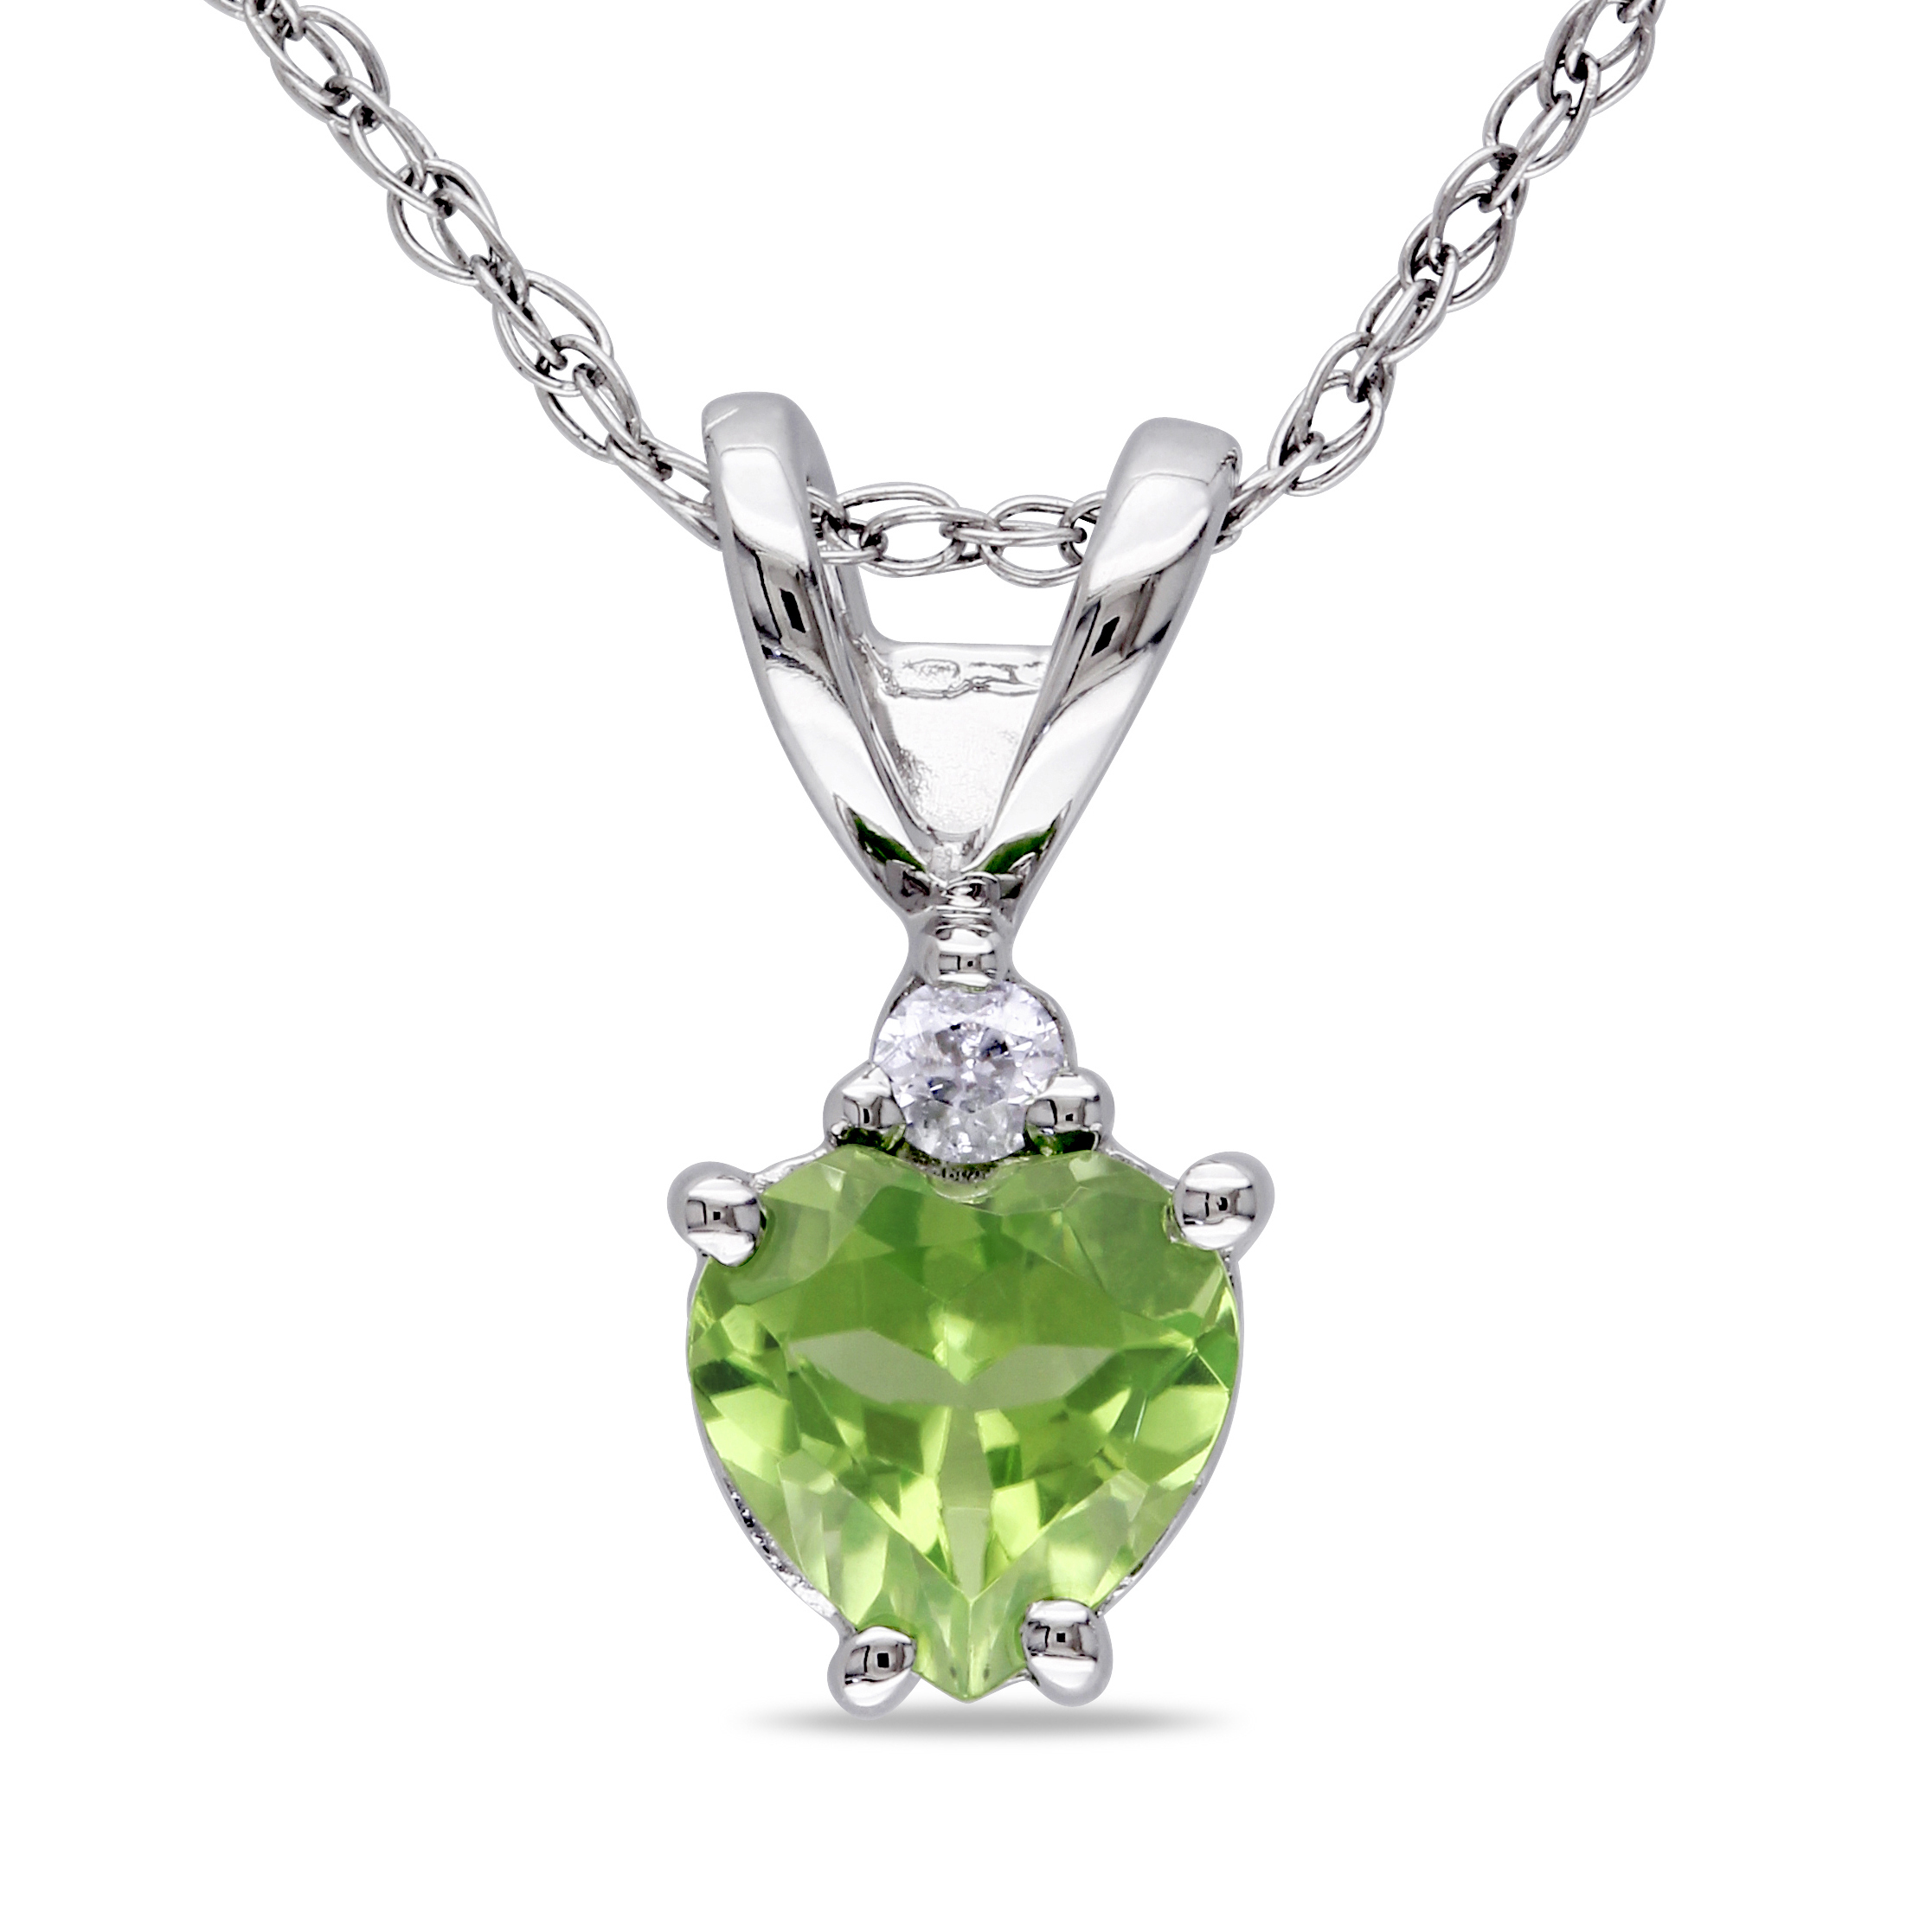 "Tangelo 1 2 Carat T.G.W. Peridot Heart and Diamond Accent 10kt White Gold Pendant, 17"" by Delmar Manufacturing LLC"